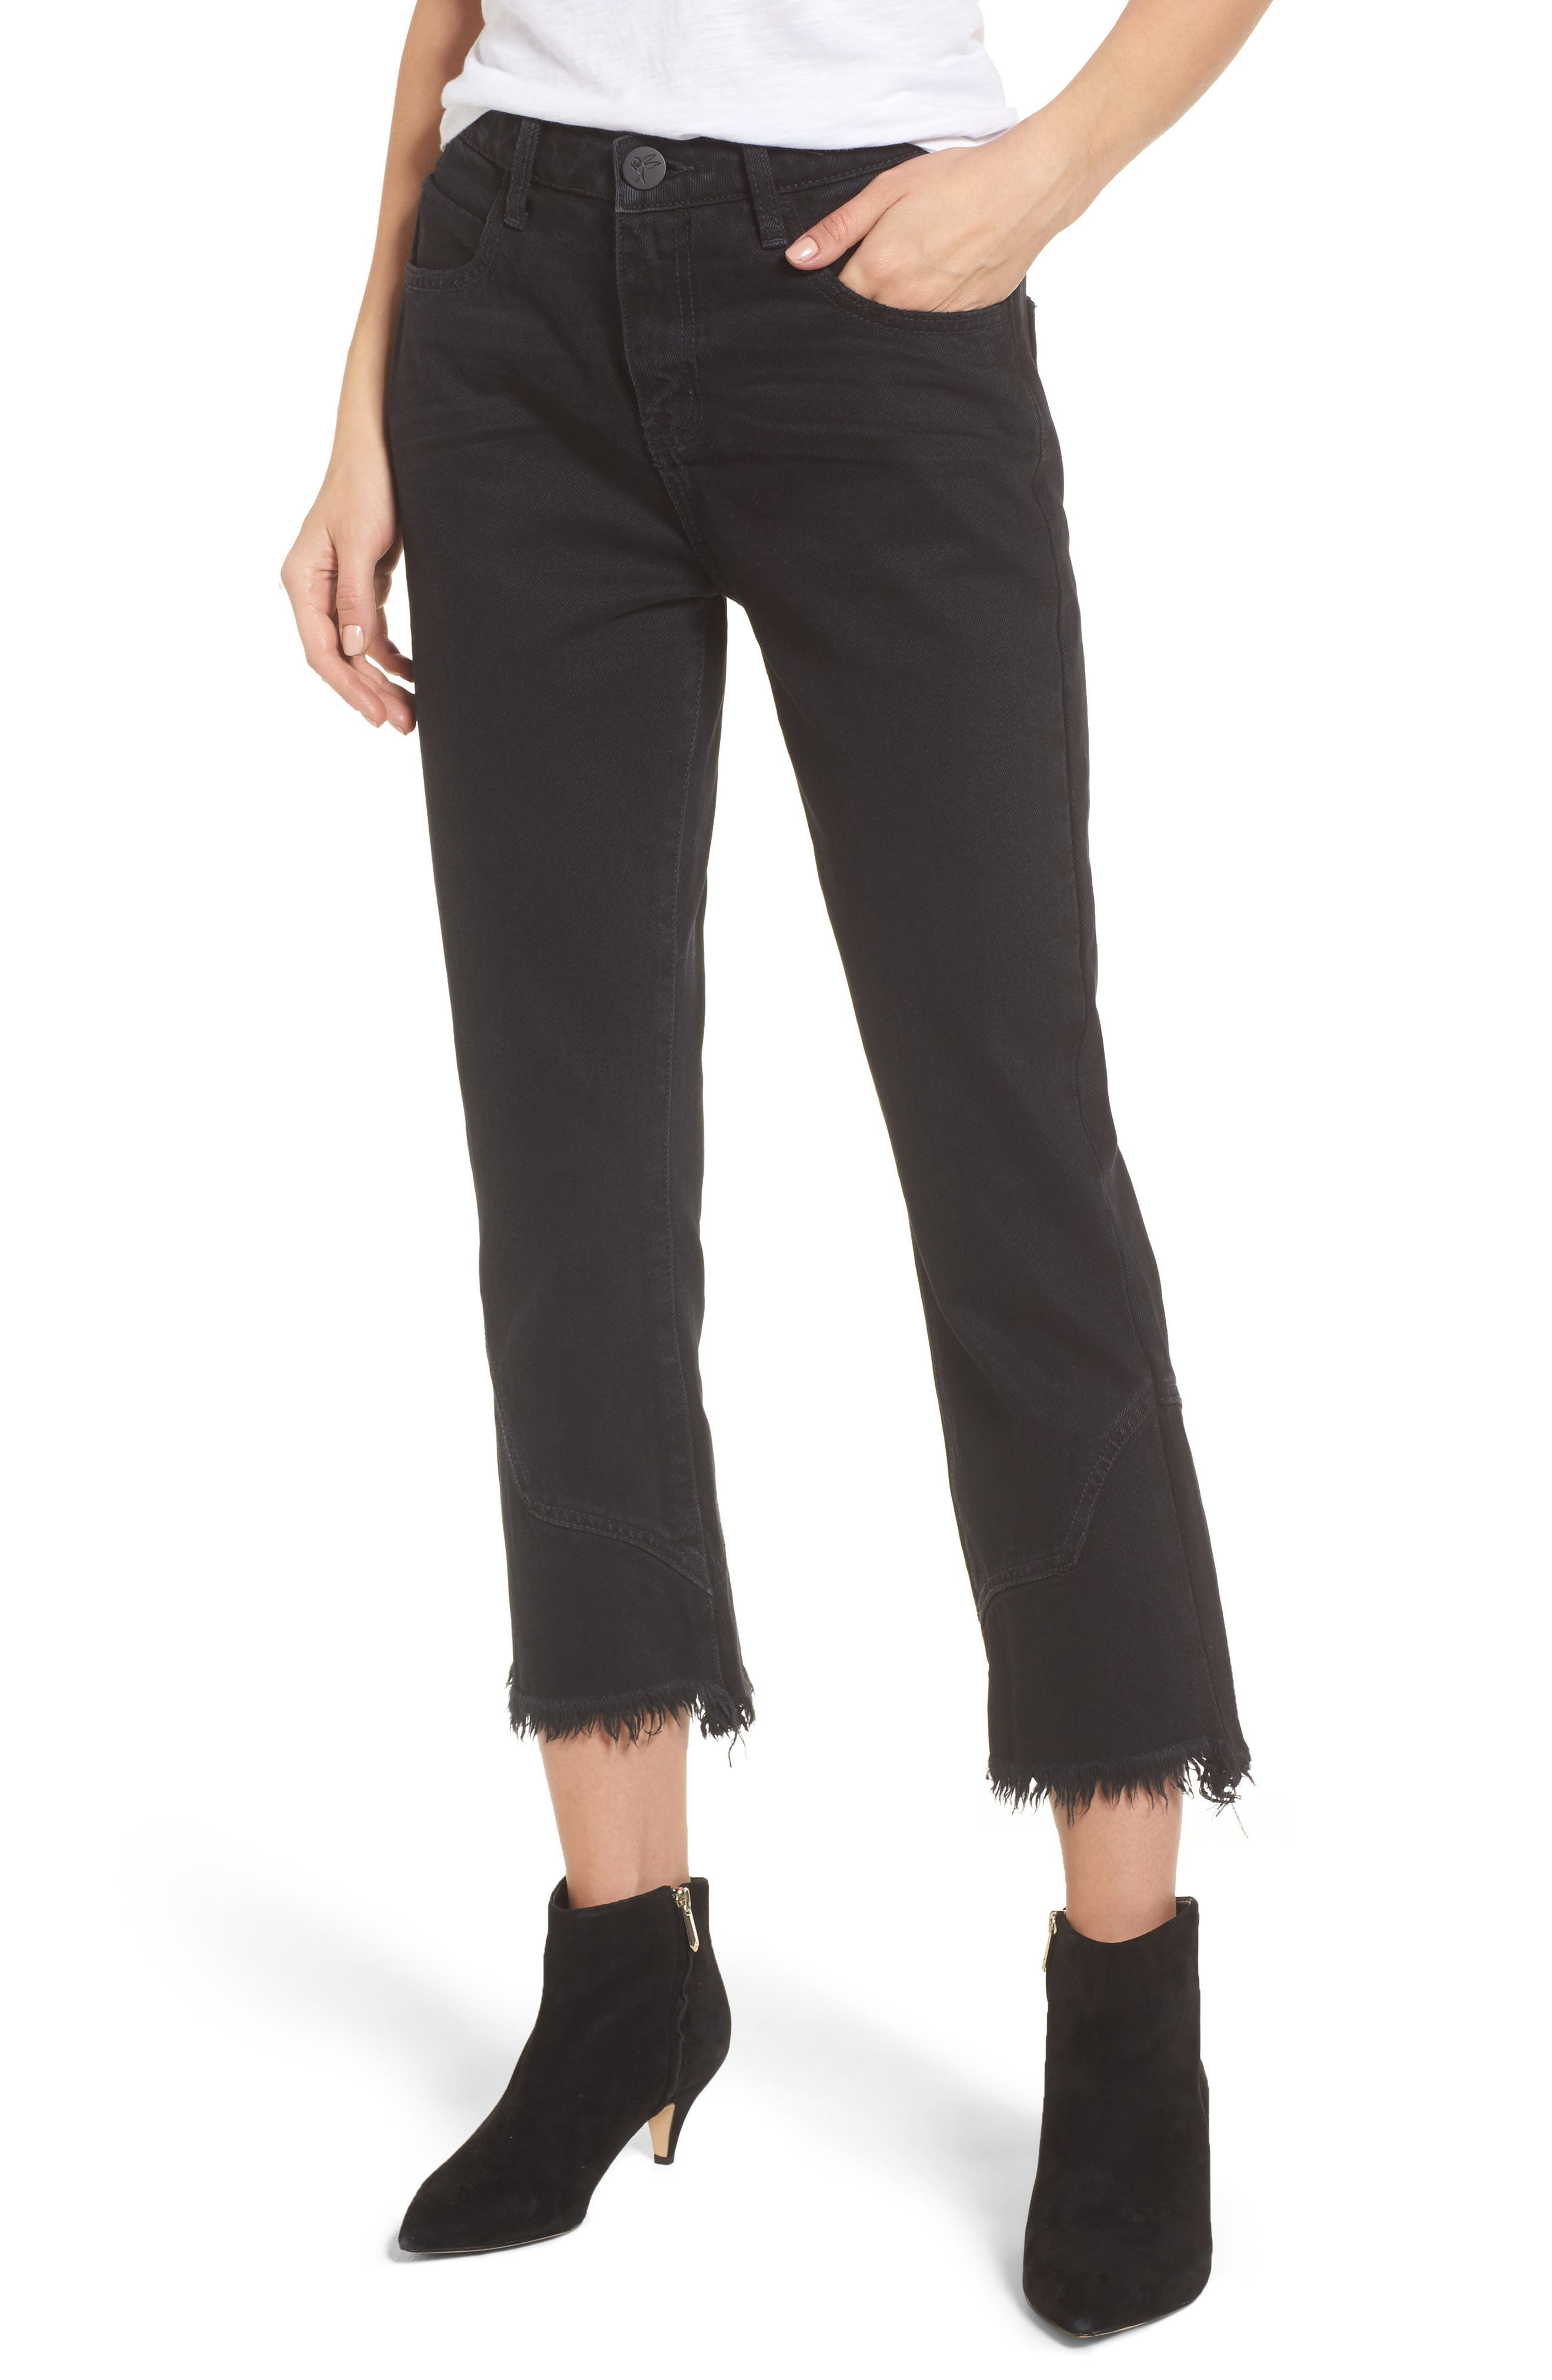 One Teaspoon Kicks Crop Flare Jeans